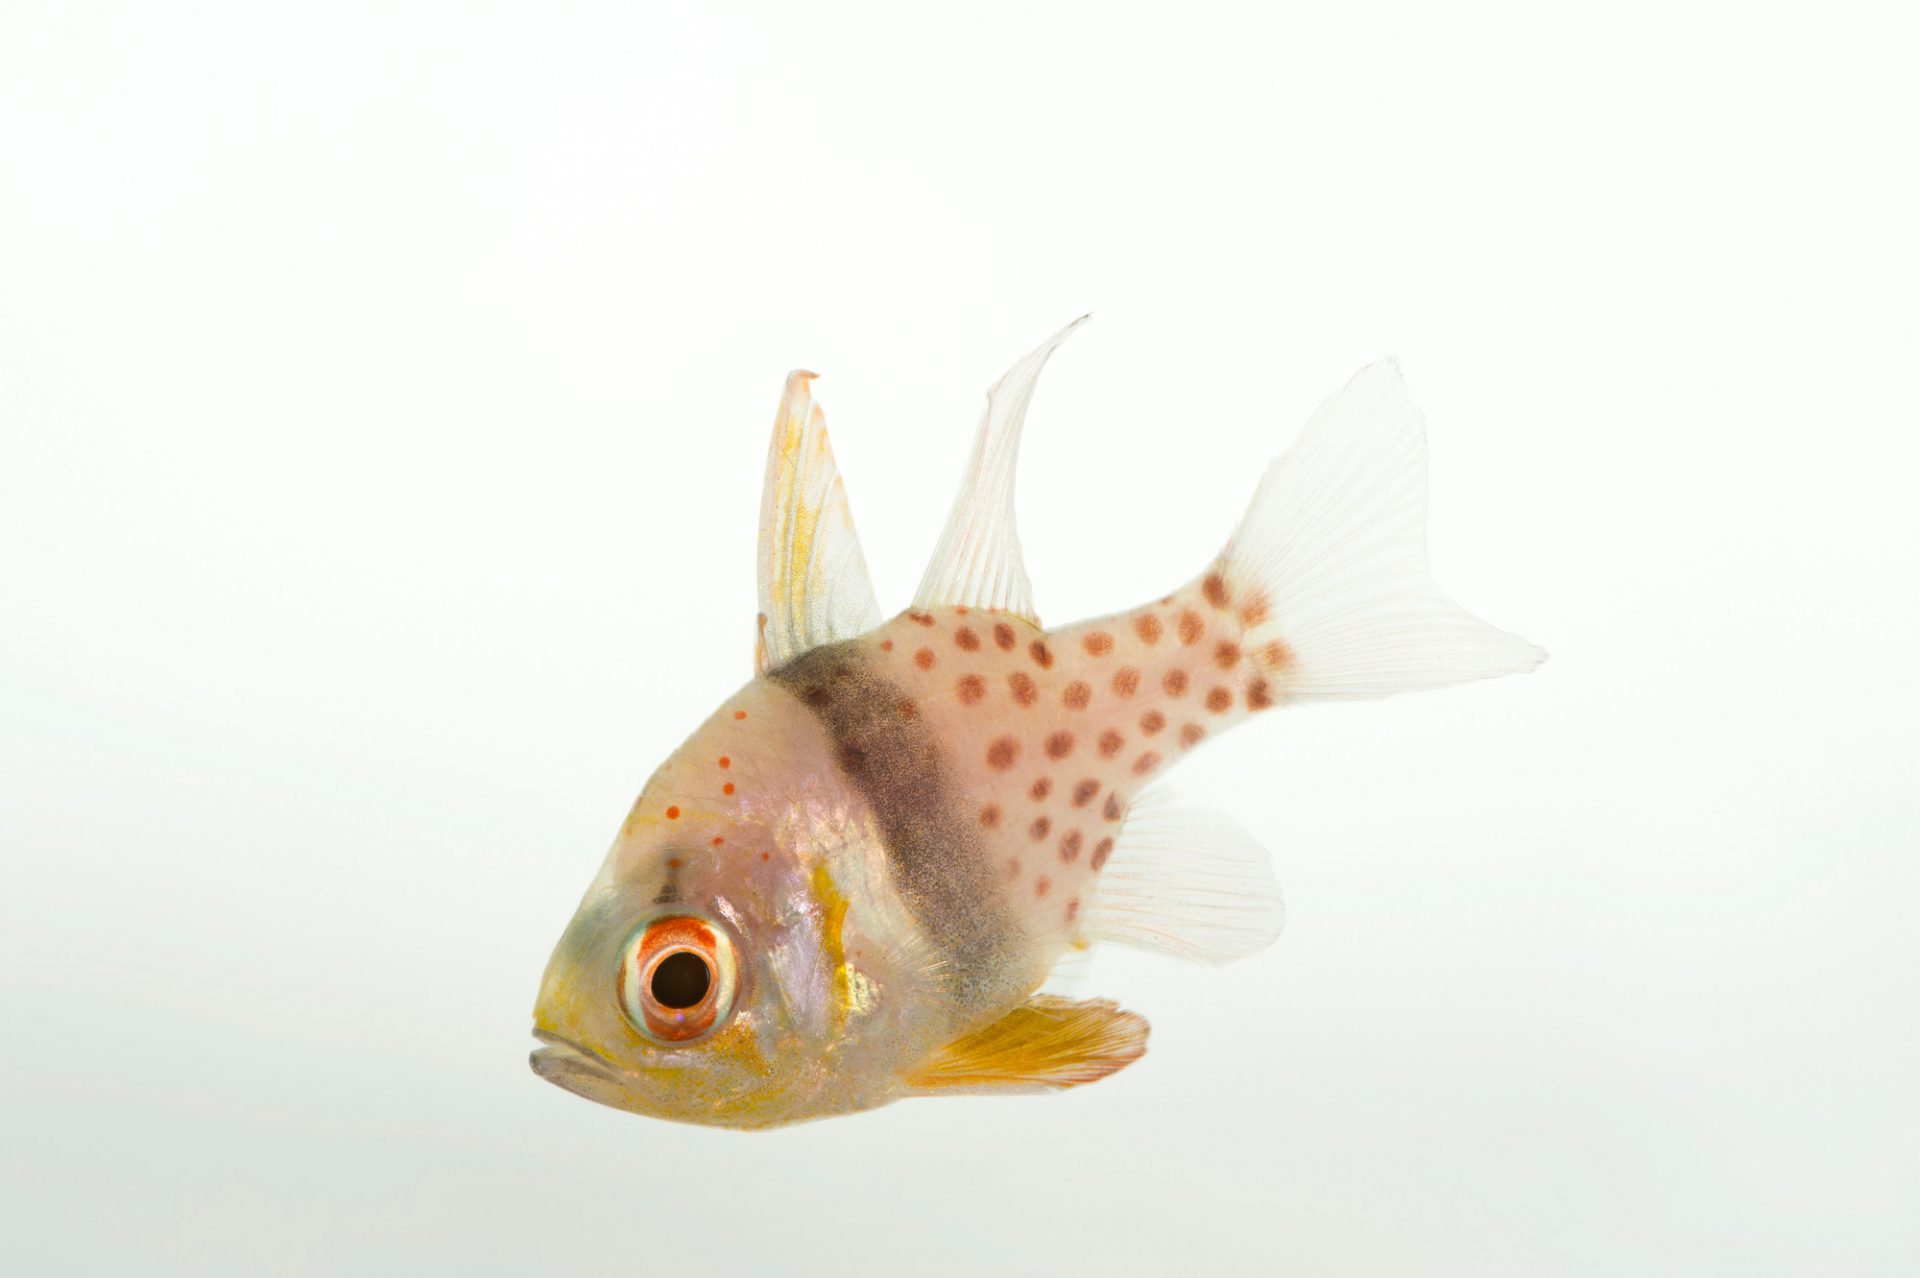 Picture of a pajama cardinalfish (Sphaeramia nematoptera) at Omaha's Henry Doorly Zoo and Aquarium.